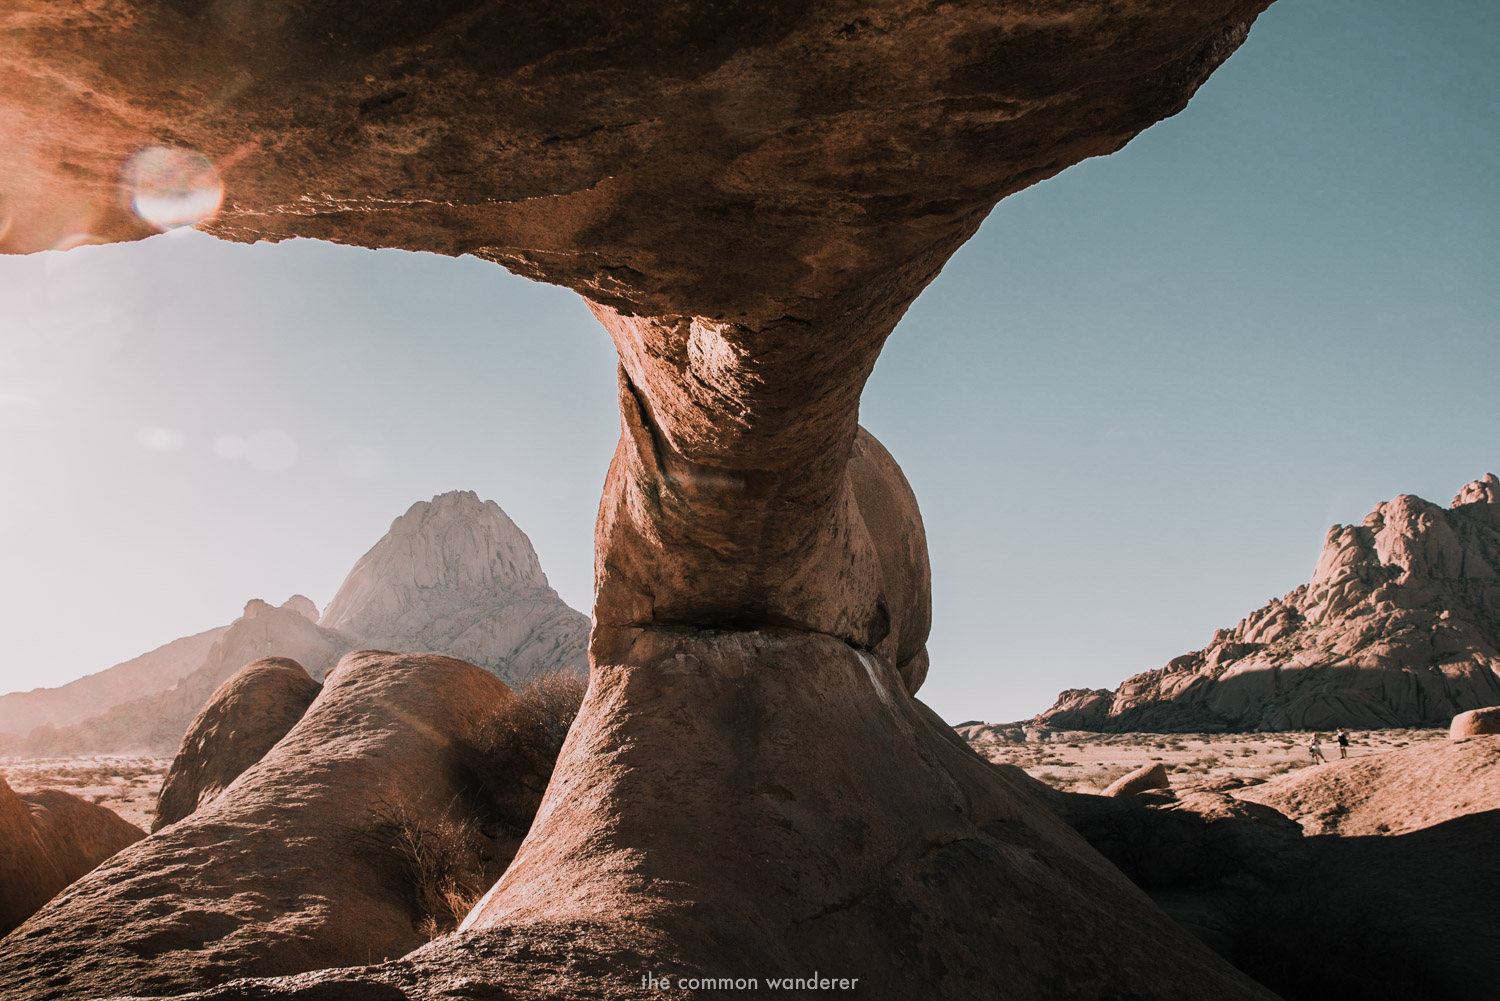 Spitzkoppe is unique and one of the best places to visit in Namibia